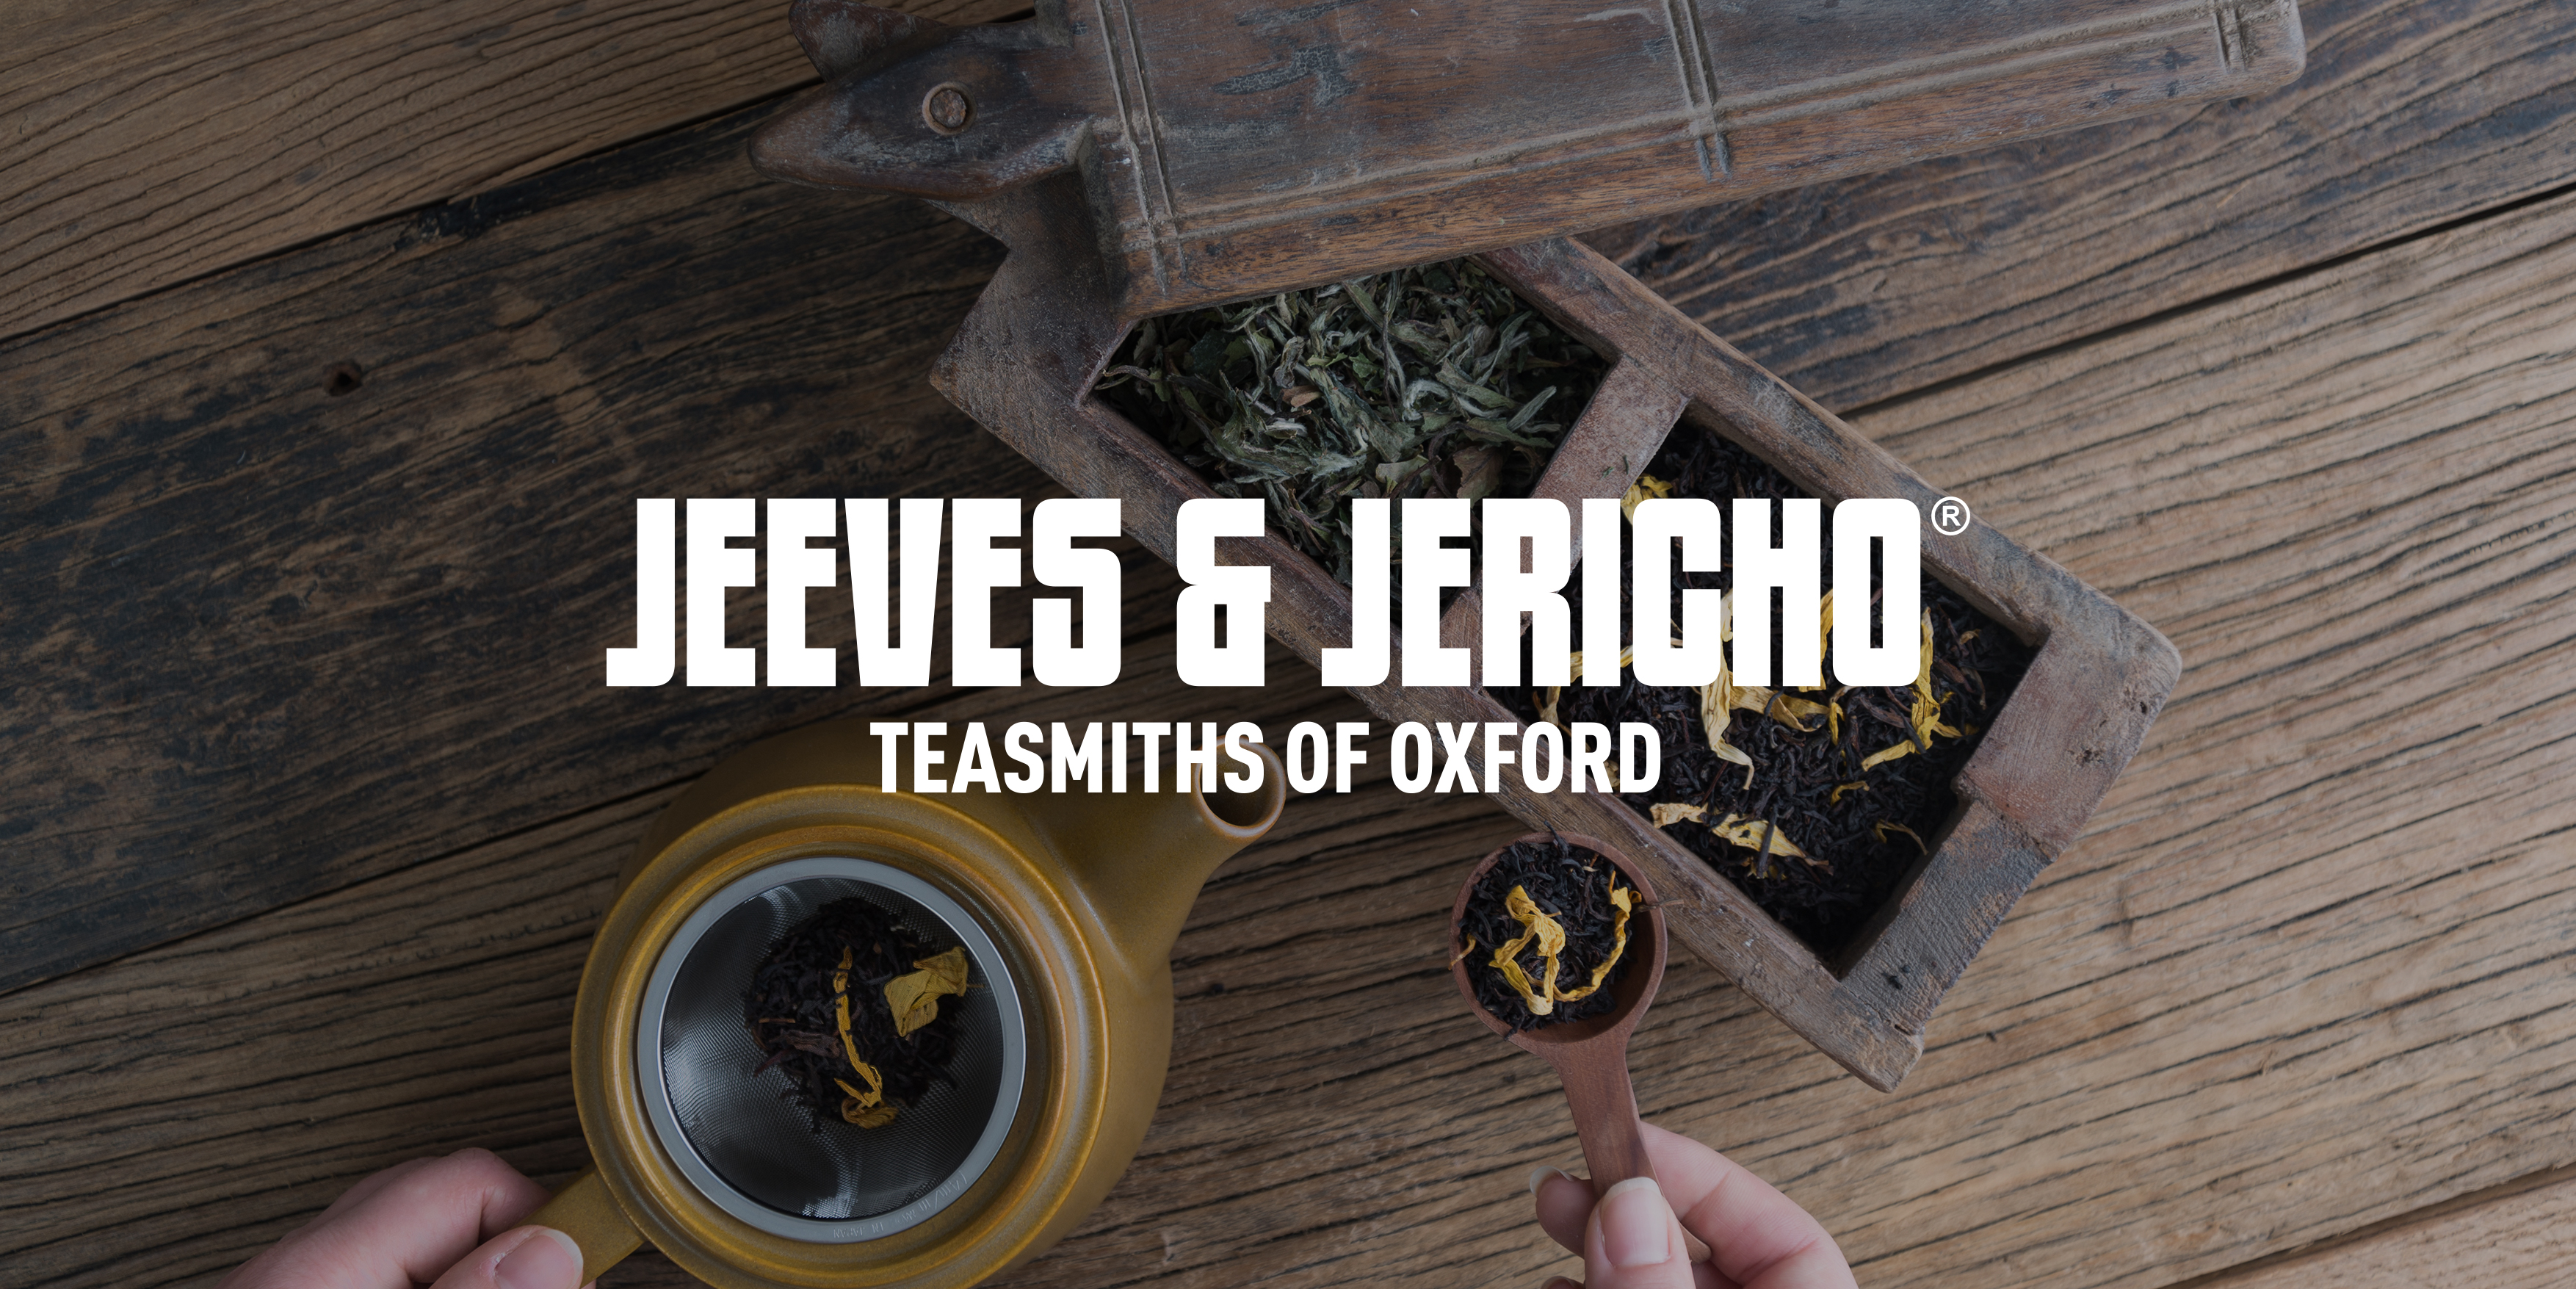 Jeeves & Jericho Tea Branding by Toast Food